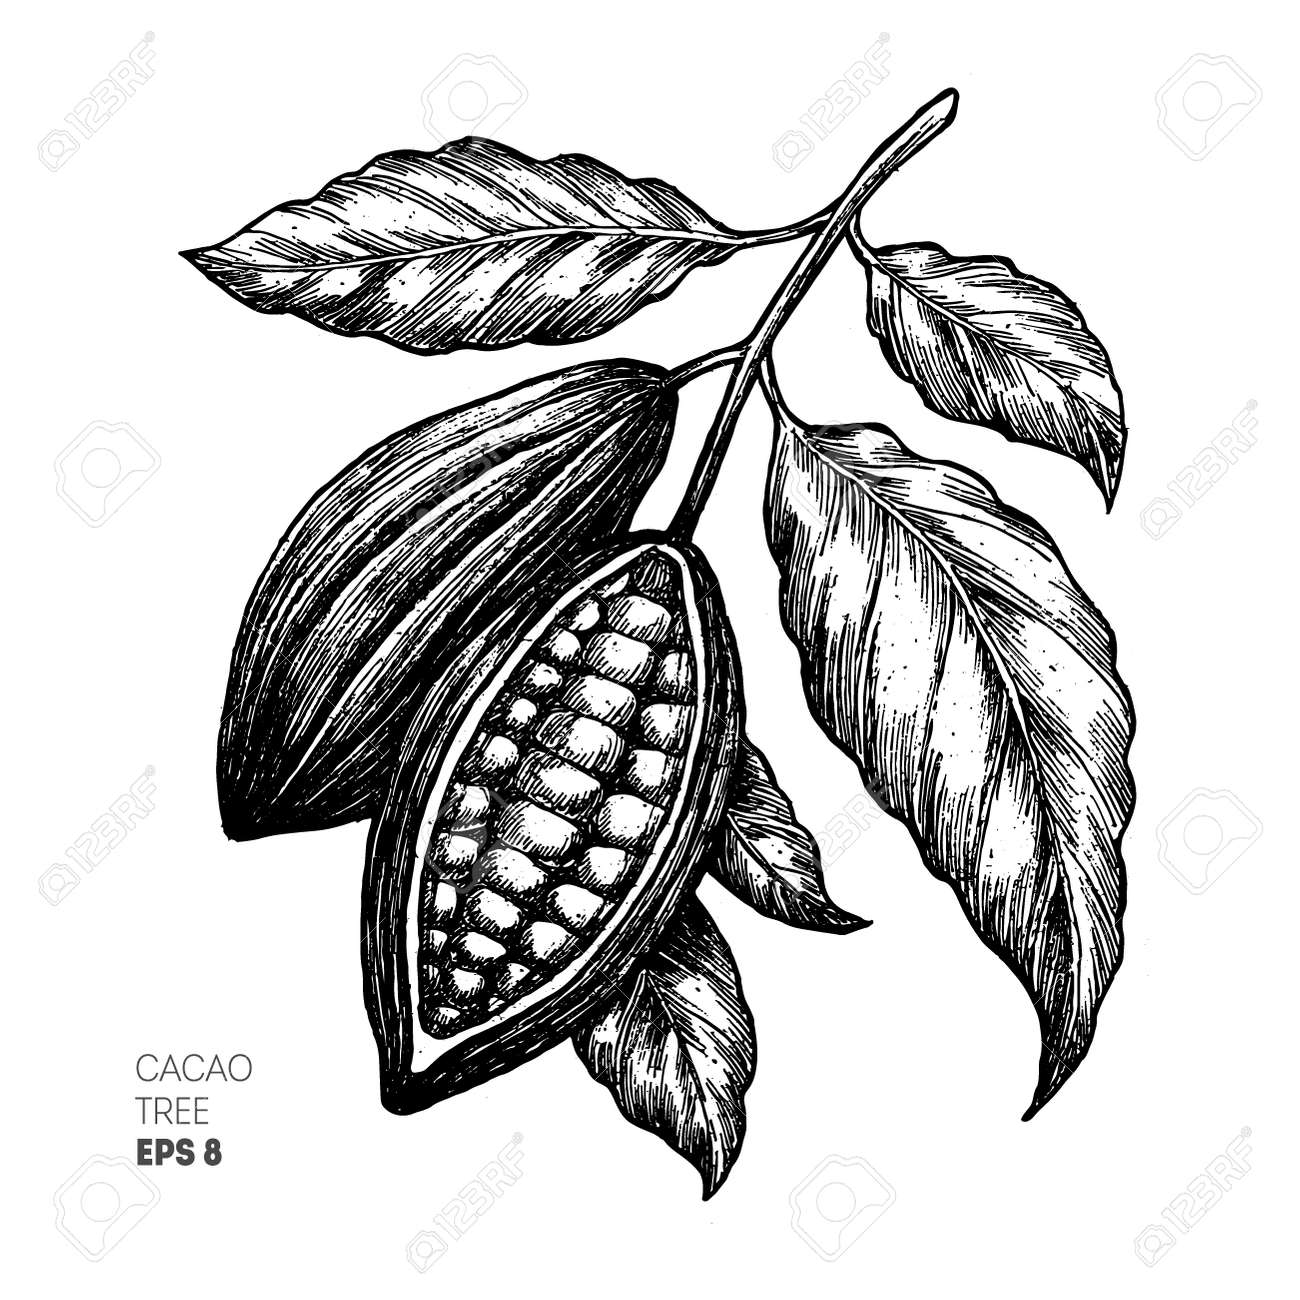 Cocoa beans illustration. Engraved style illustration. Chocolate cocoa beans. Vector illustration - 88551527